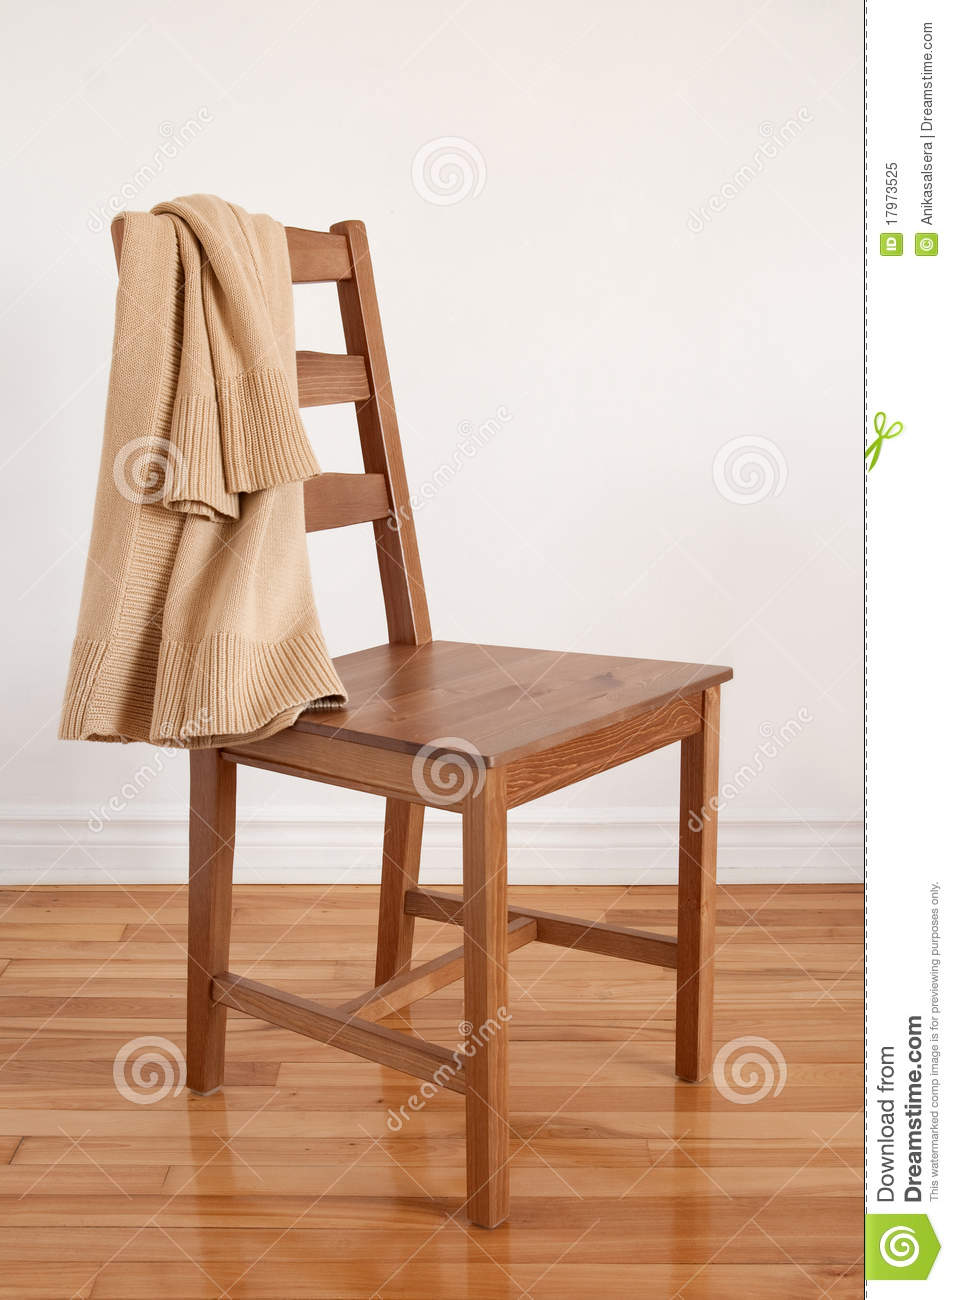 Chair On Wooden Floor With Clothing Over Its Back Royalty Free Stock ...